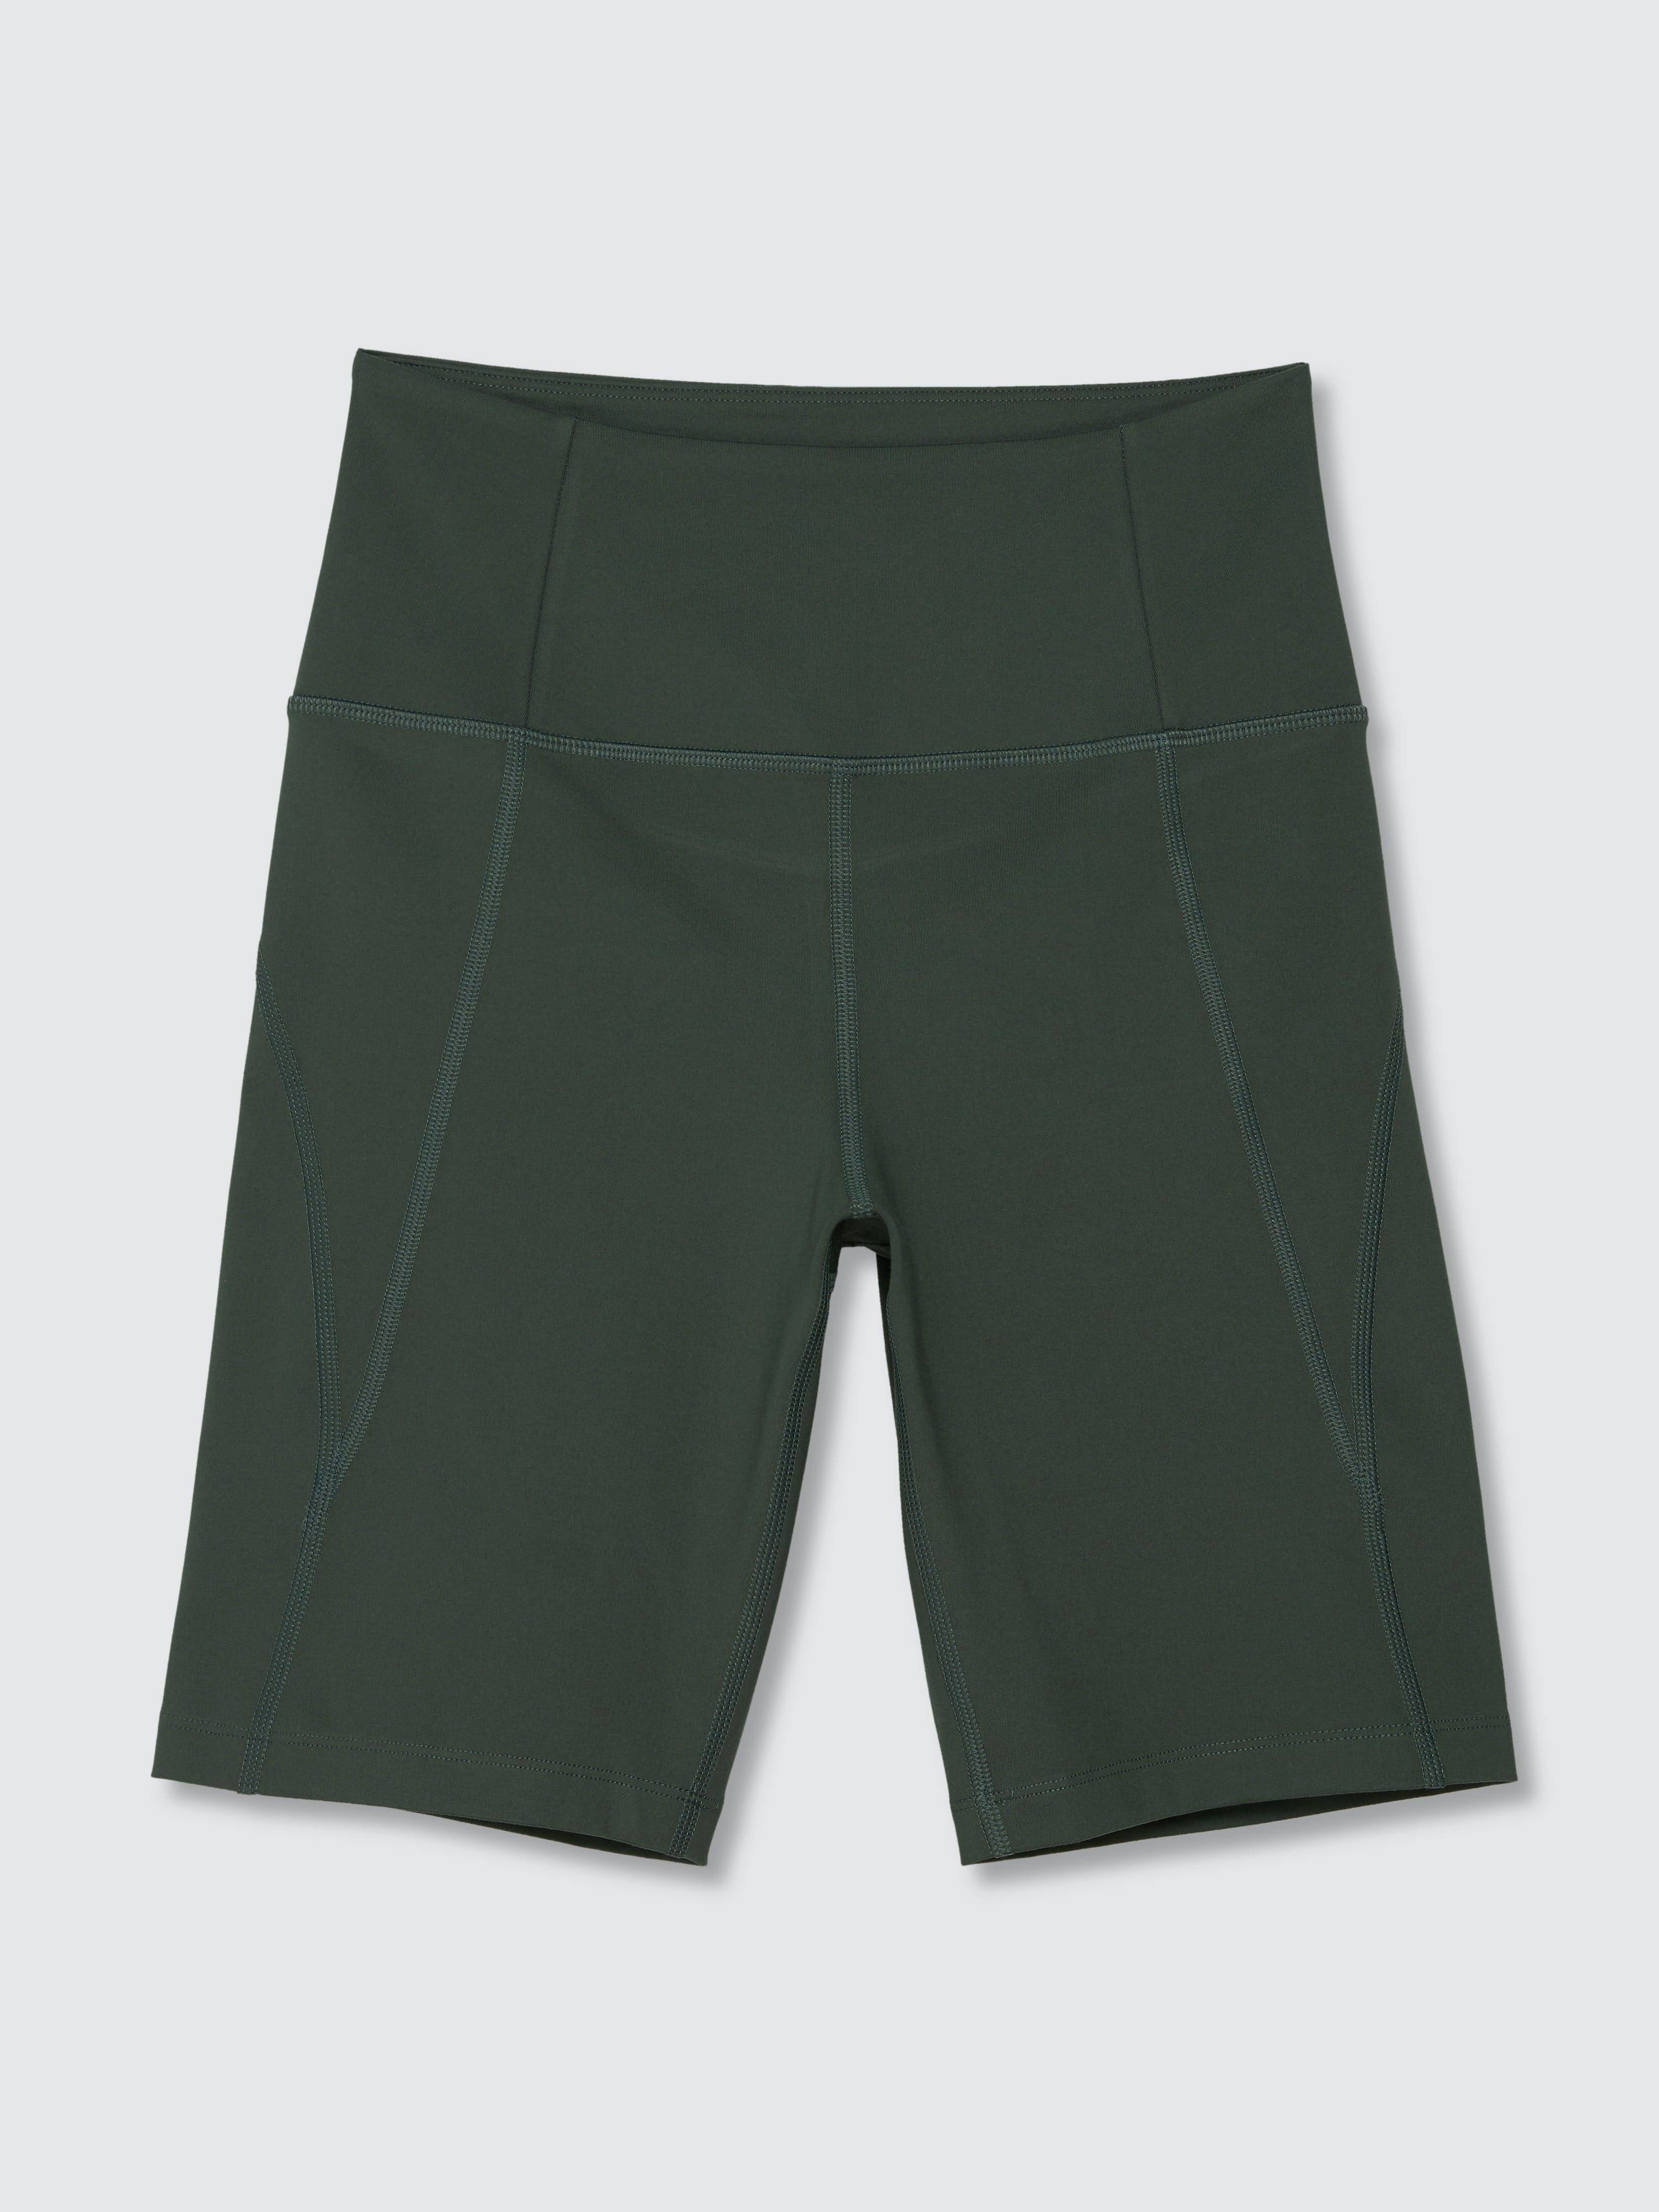 Girlfriend Collective High-Rise Bike Short - L - Also in: XL, M, XS, S  - Grey